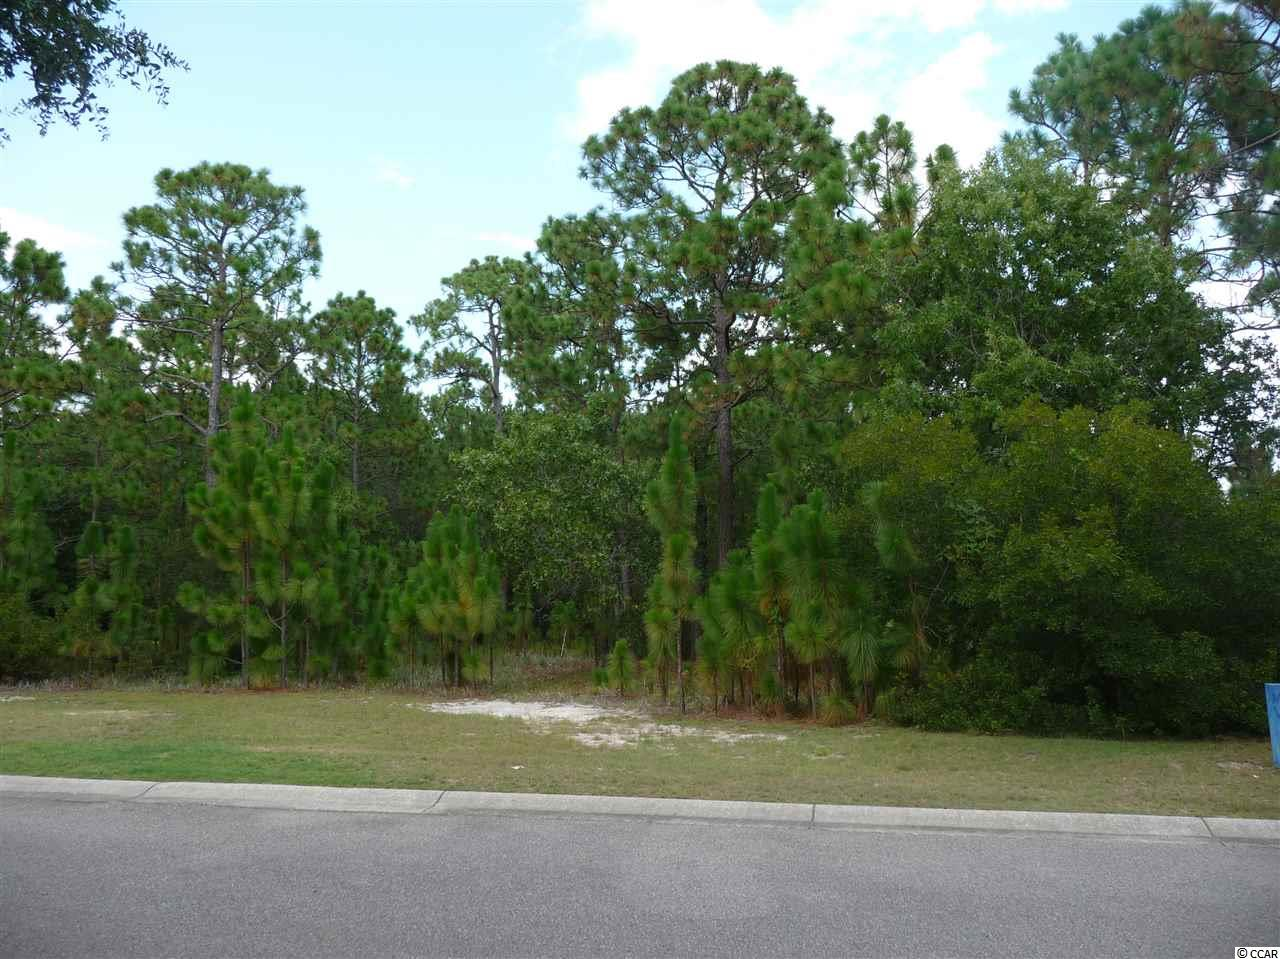 Build your dream home on this large lot in The Estates at Reunion Hall. Lots of trees for privacy, including a 10-foot landscape buffer at the rear and Association-maintained landscaping along the east side. The lot allows for a side-load garage and driveway along either side of the house rather than the front. Biking/walking path accessible at entrance to Reunion Hall. In a gated community with private ocean/beach access at Litchfield by the Sea with bathrooms, walking and biking paths, docks for fishing, crabbing, kayak launch and tennis courts. Use of community pool at River Club is included in HOA. Membership available to The Reserve's private Greg Norman golf course, pool, clubhouse and Safe Harbor Marina. Very close to food stores, shopping, restaurants, entertainment, famous Brookgreen Gardens and the ocean.